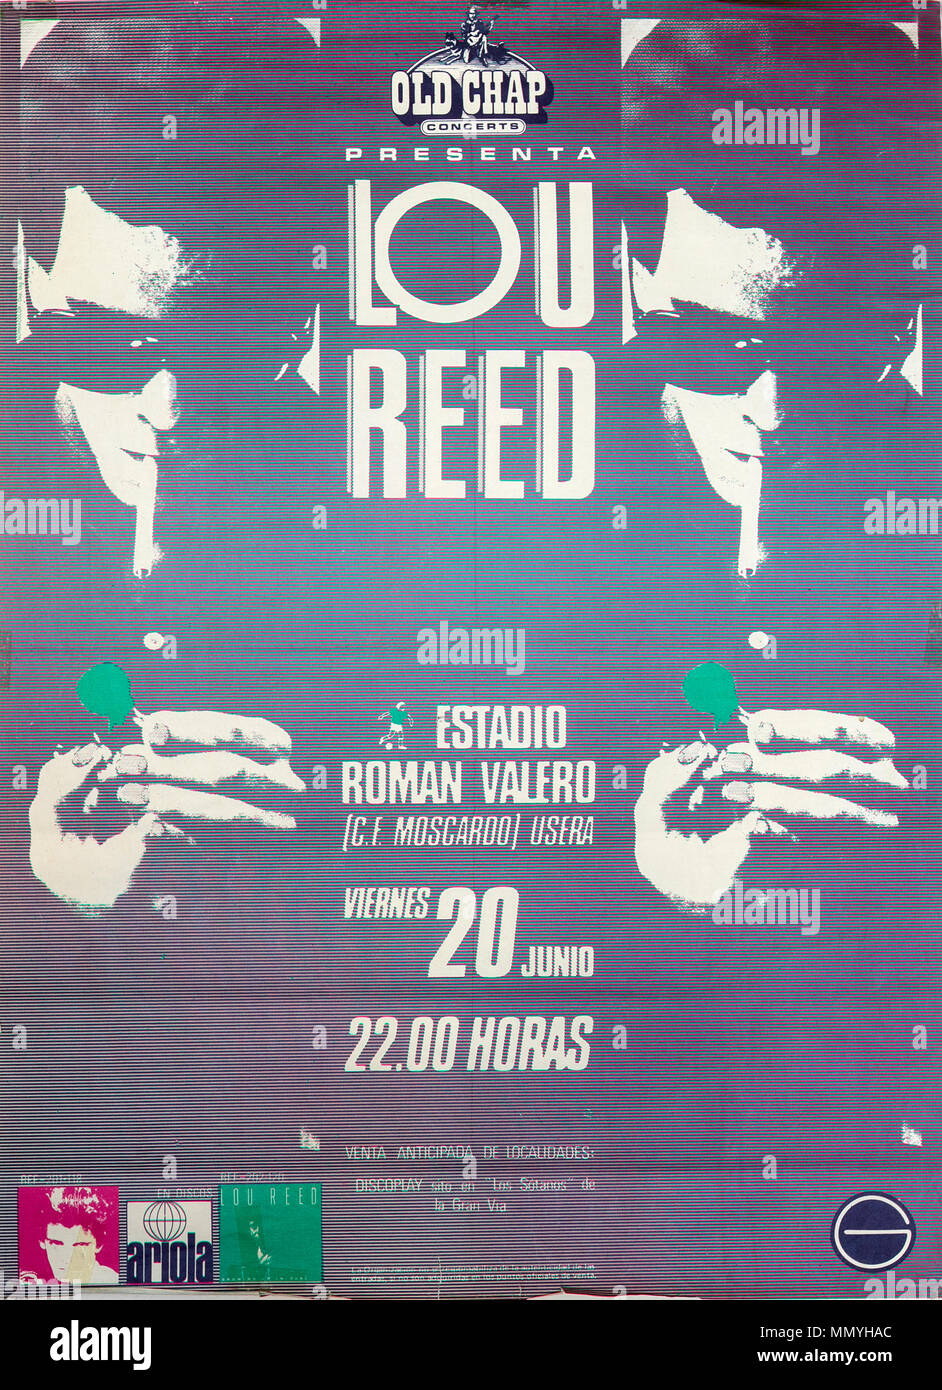 lou-reed-madrid-1980-tour-musical-concer